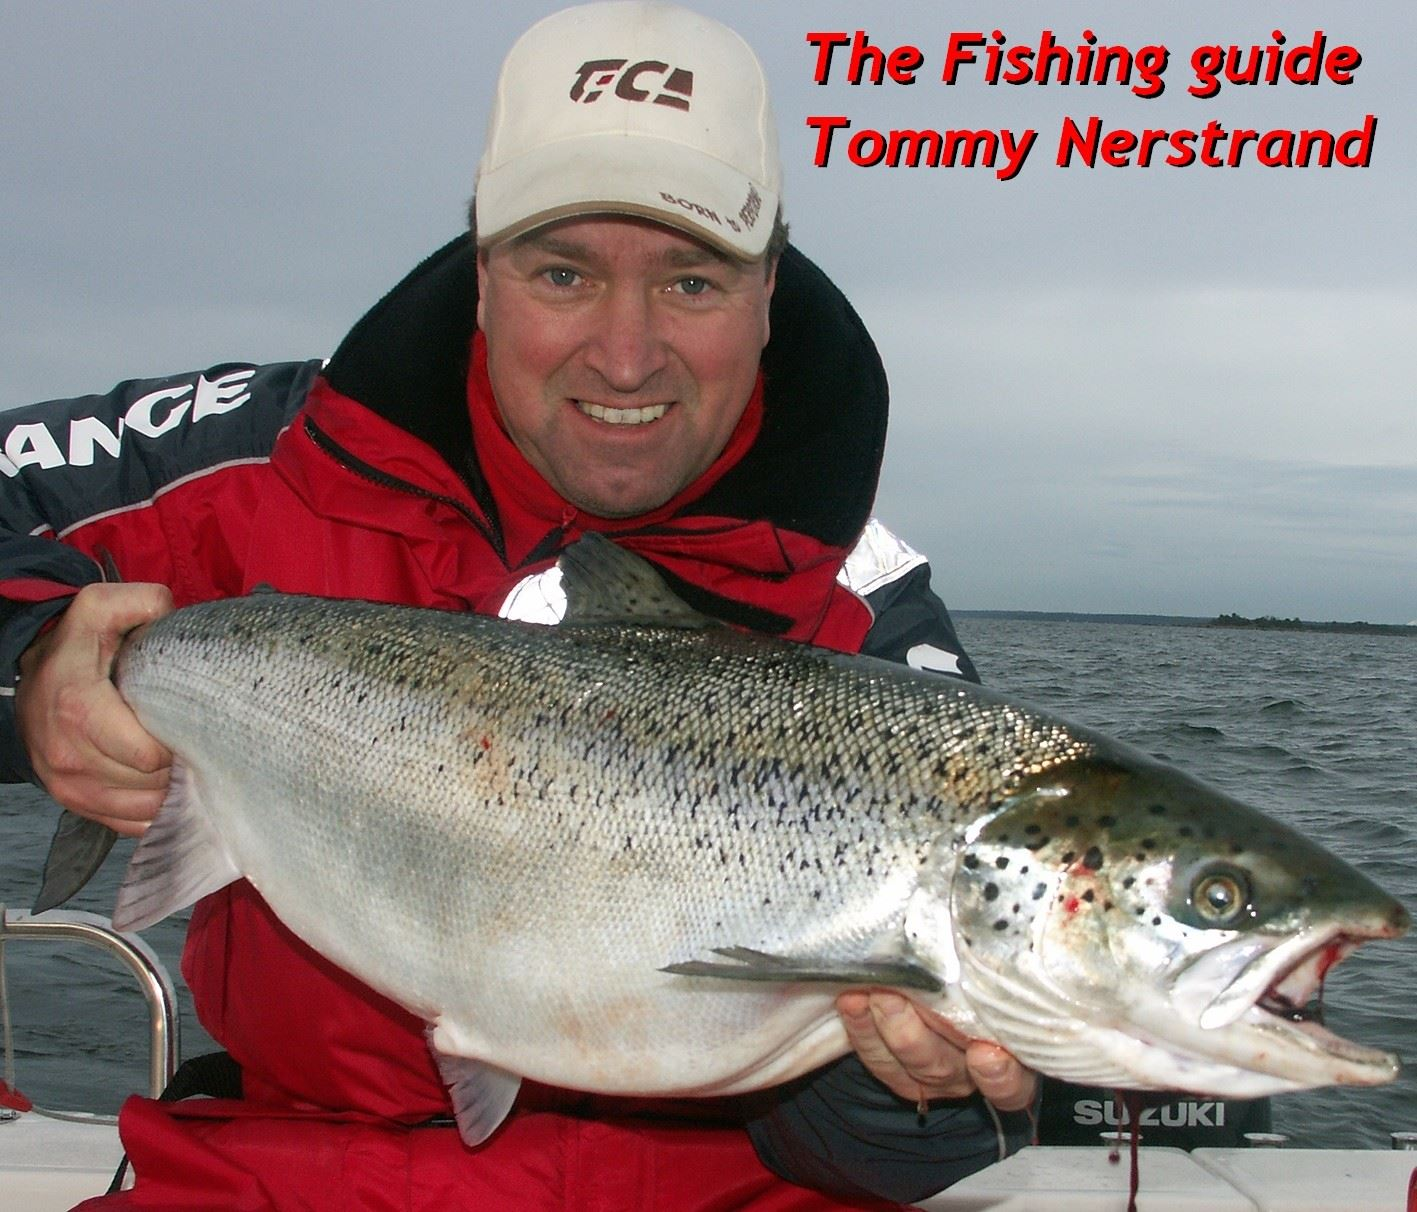 Fiskeguide Tommy Nerstrand